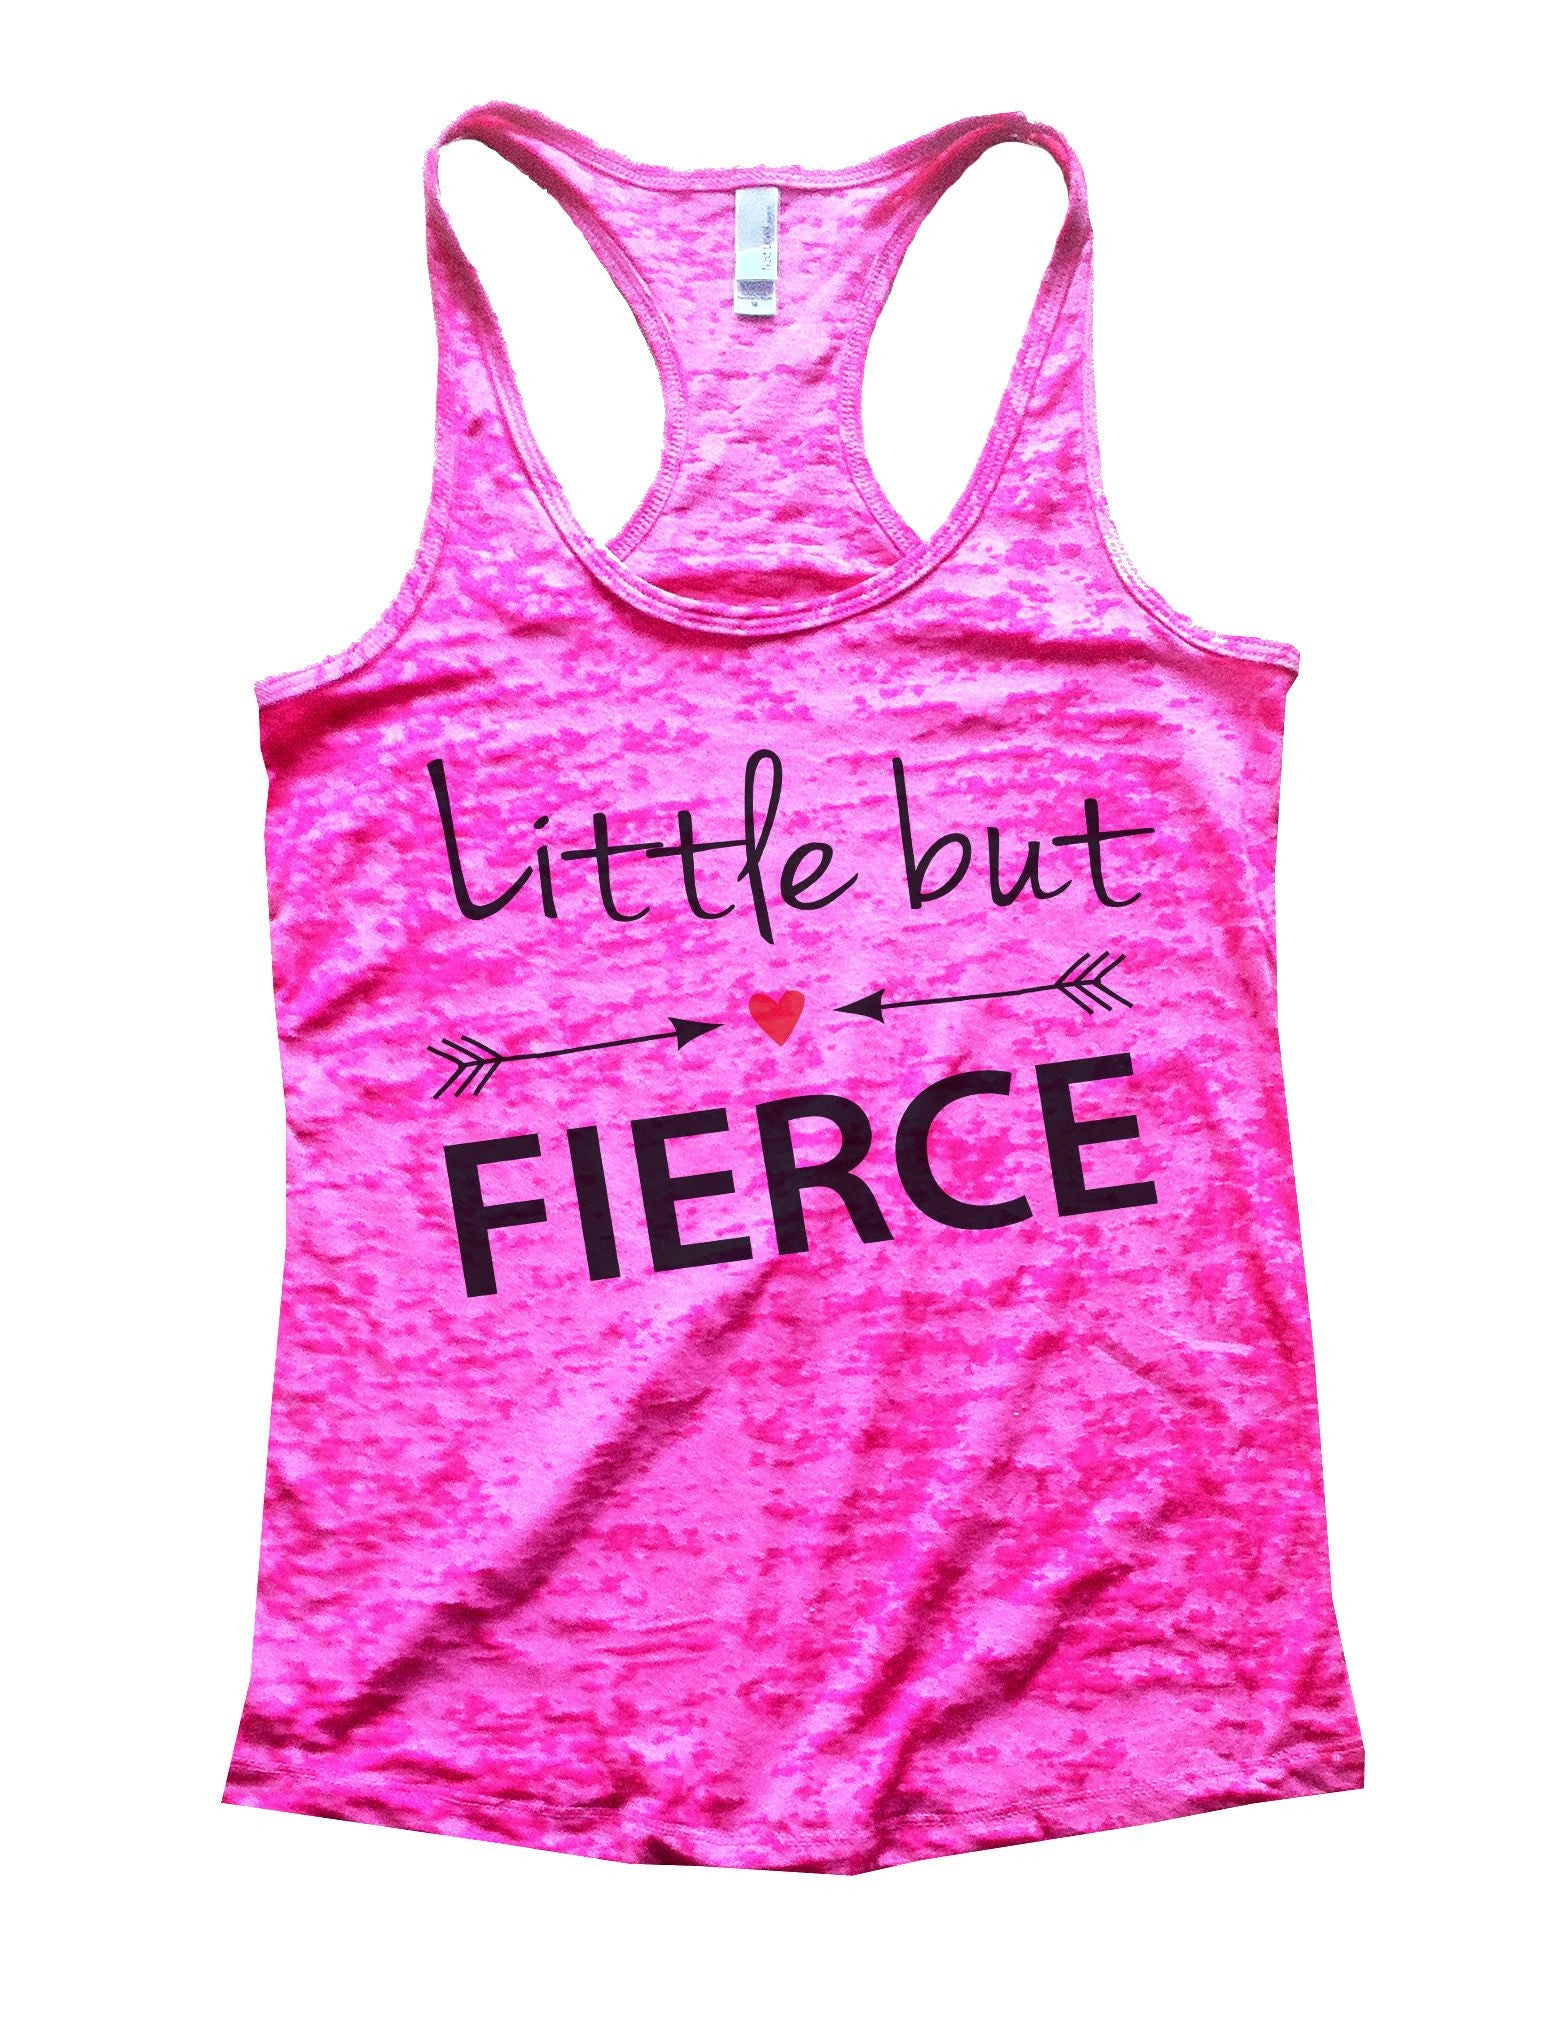 Little But Fierce Burnout Tank Top By BurnoutTankTops.com - 787 - Funny Shirts Tank Tops Burnouts and Triblends  - 5